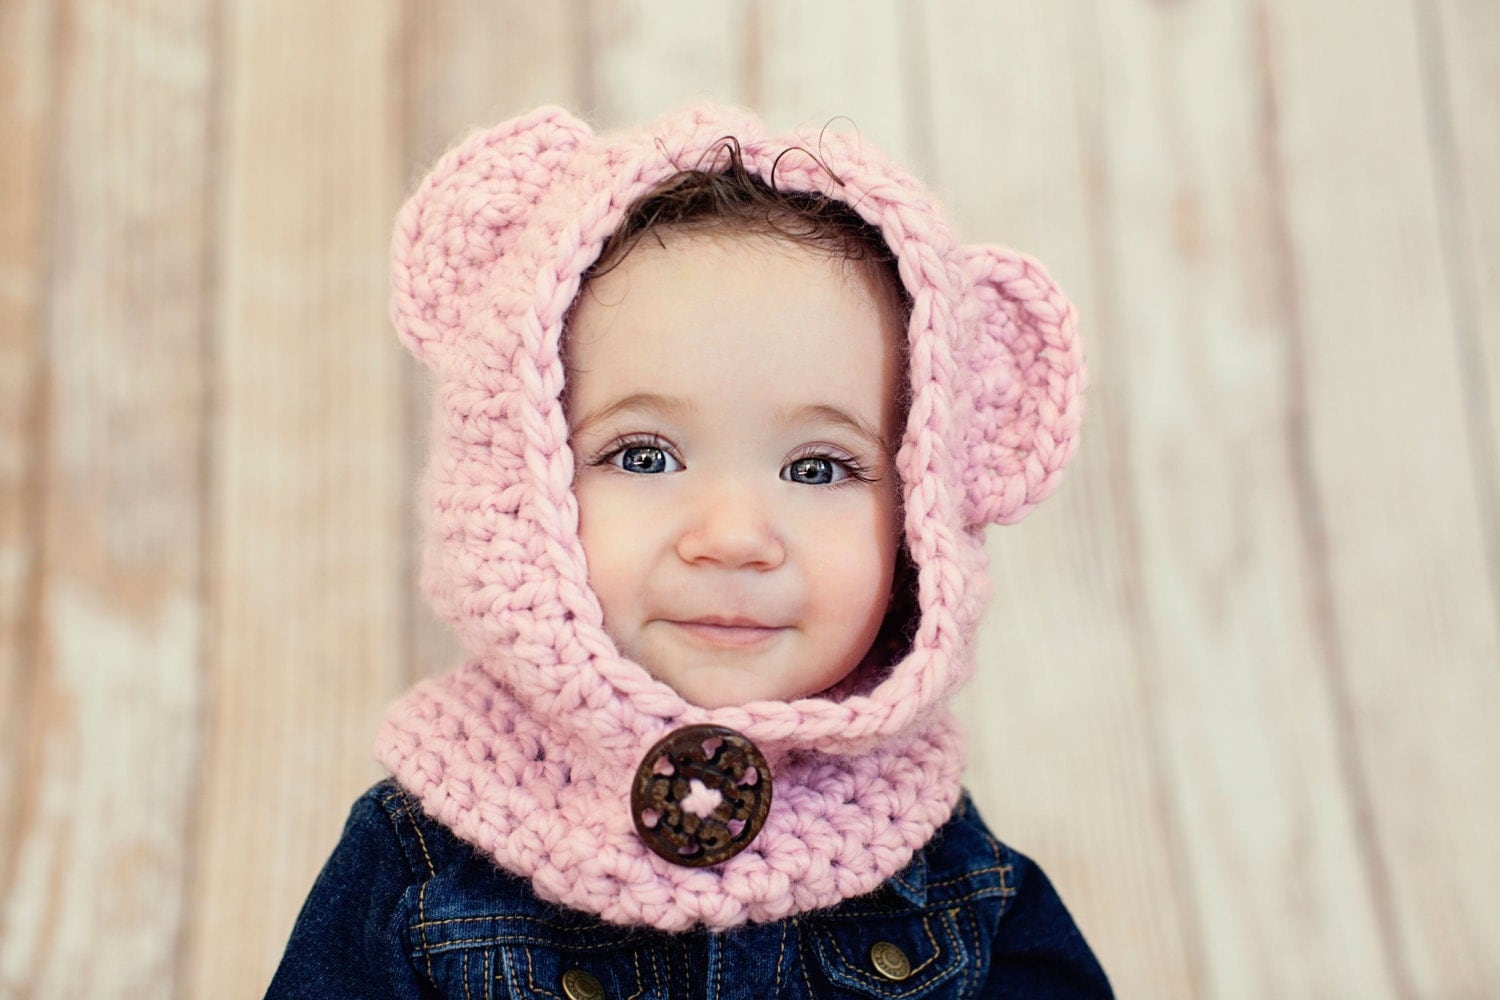 Crochet Baby Bear Cowl Pattern : Crochet Cowl Crochet Bear Cowl Toddler Hat by ...